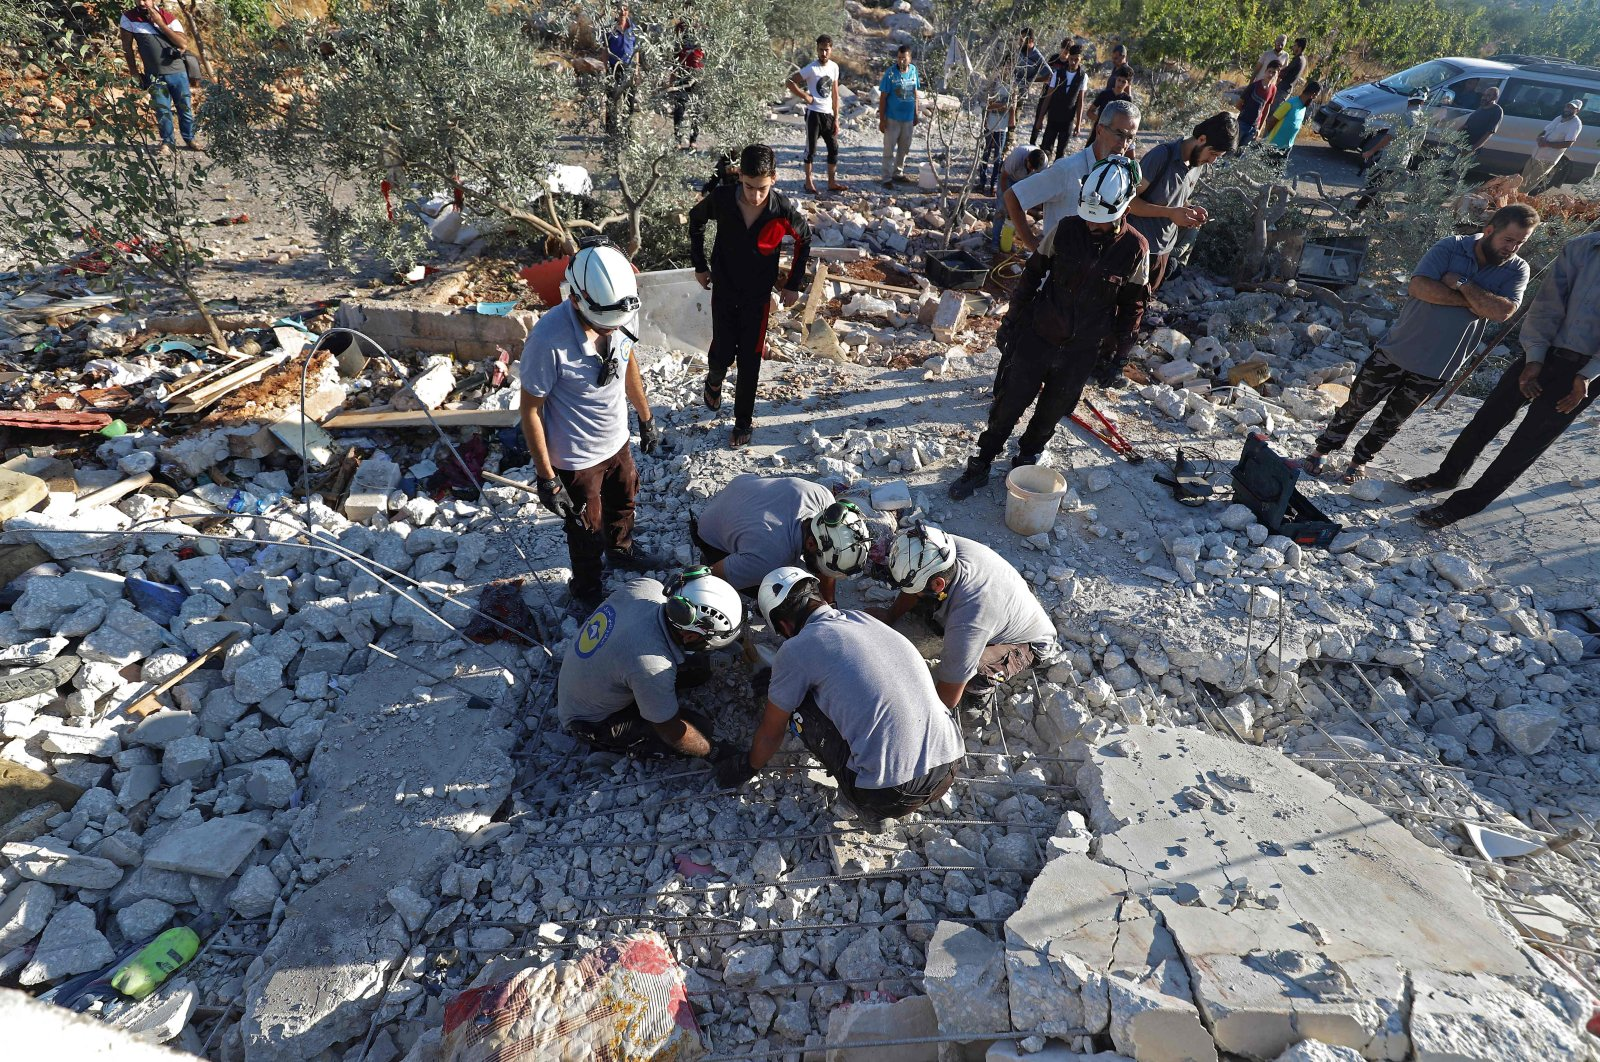 Members of the Syrian Civil Defence (White Helmets) search through the rubble of a building that was knocked down by Syrian regime forces' bombardment in the town of Balashun in the Jabal al-Zawiya region in the south of Syria's northwestern Idlib province, on Aug. 19, 2021. (Photo by Abdulaziz KETAZ / AFP)